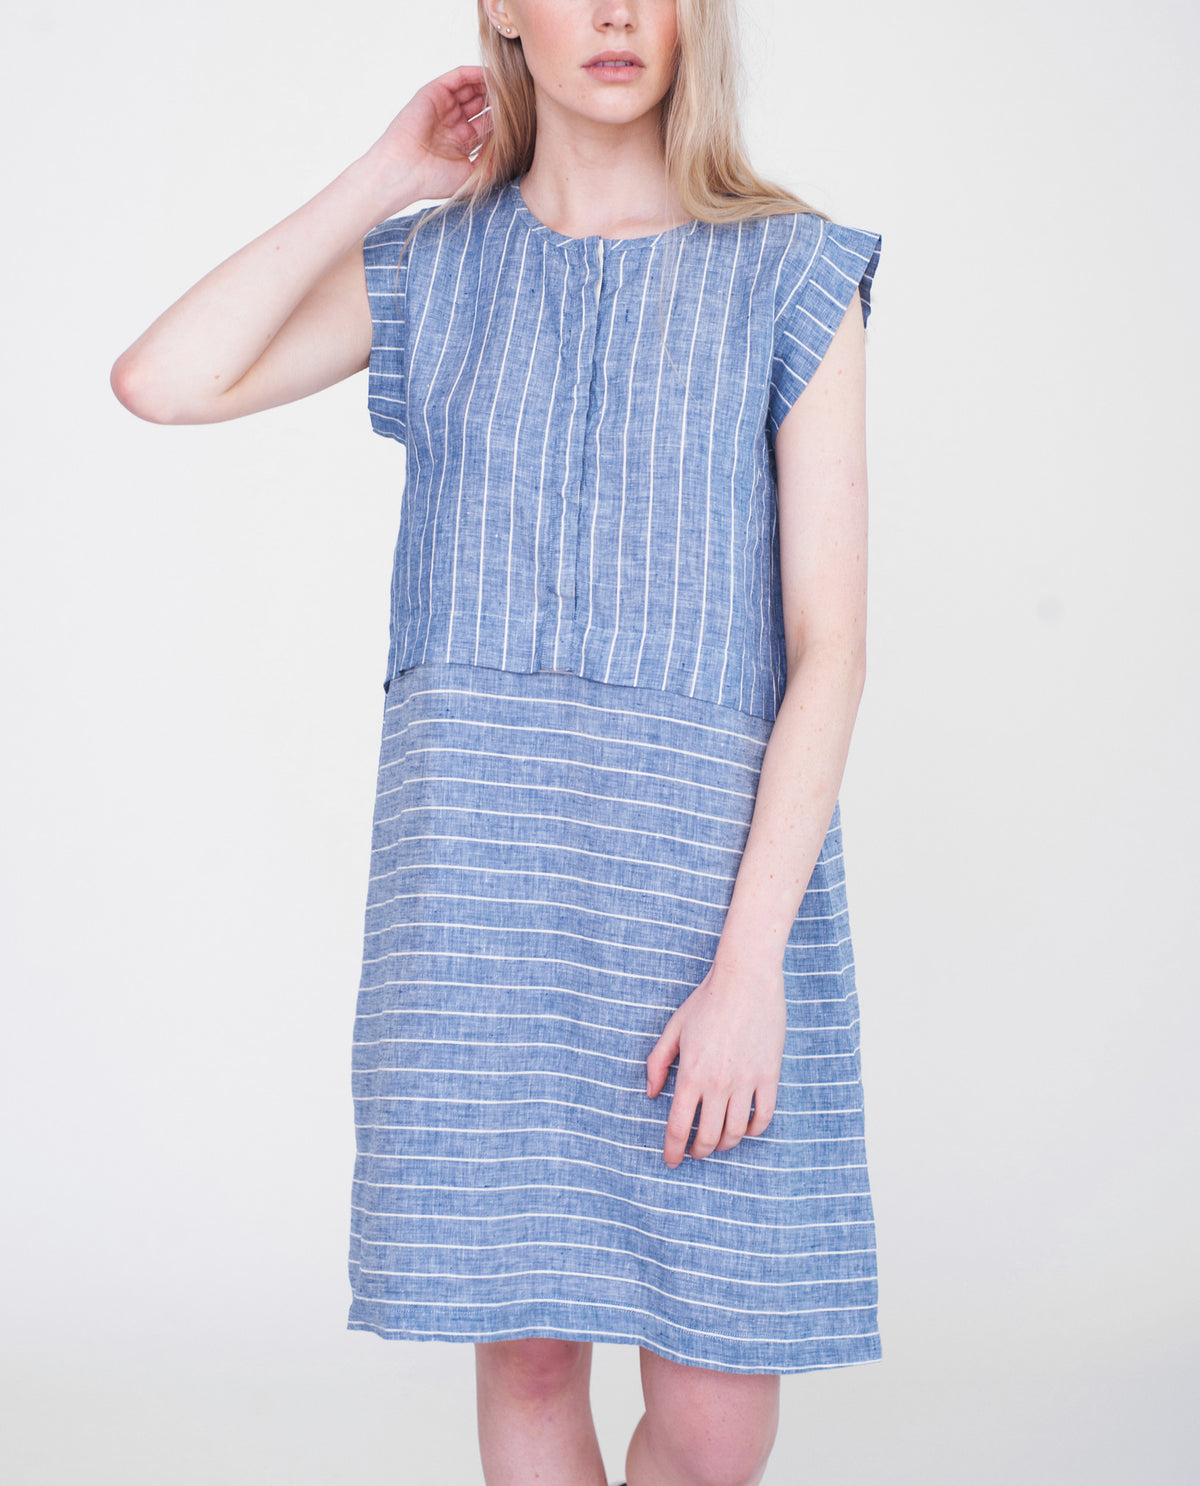 MAKAYLA Linen Striped Dress